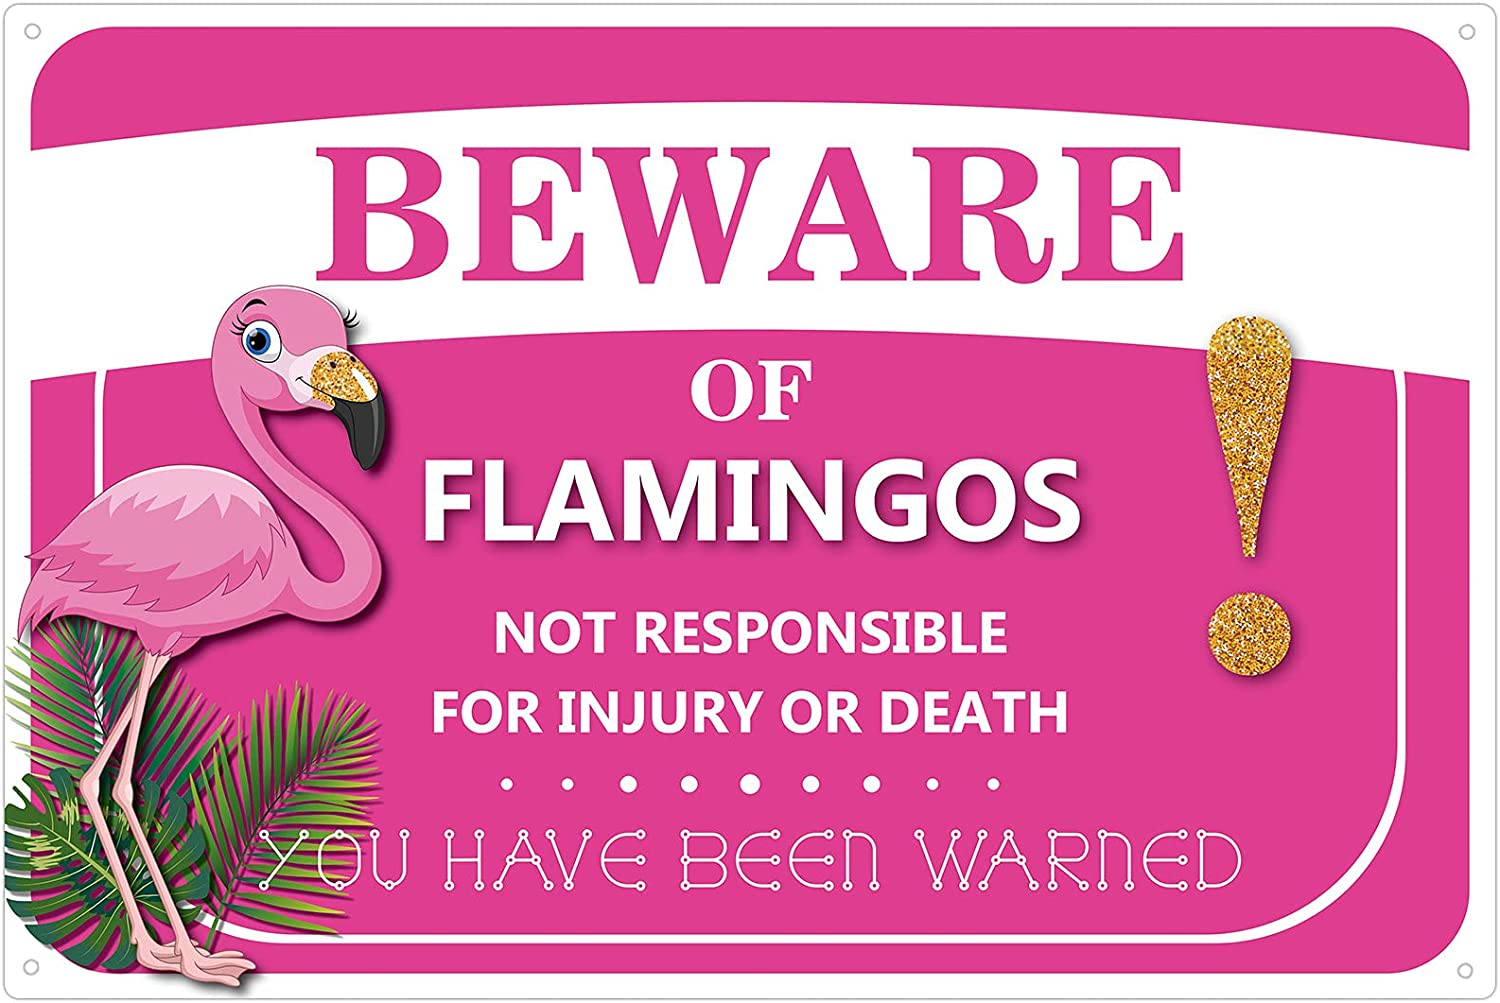 Therwen Flamingo Metal Pink Sign for Women Aluminum 11.8 x 7.9 Inch Beware of Flamingo Warning Decor Metal Pink Flamingo Sign Indoor Outdoor Flamingo Wall Decor for Home Lawn Garden Living Room